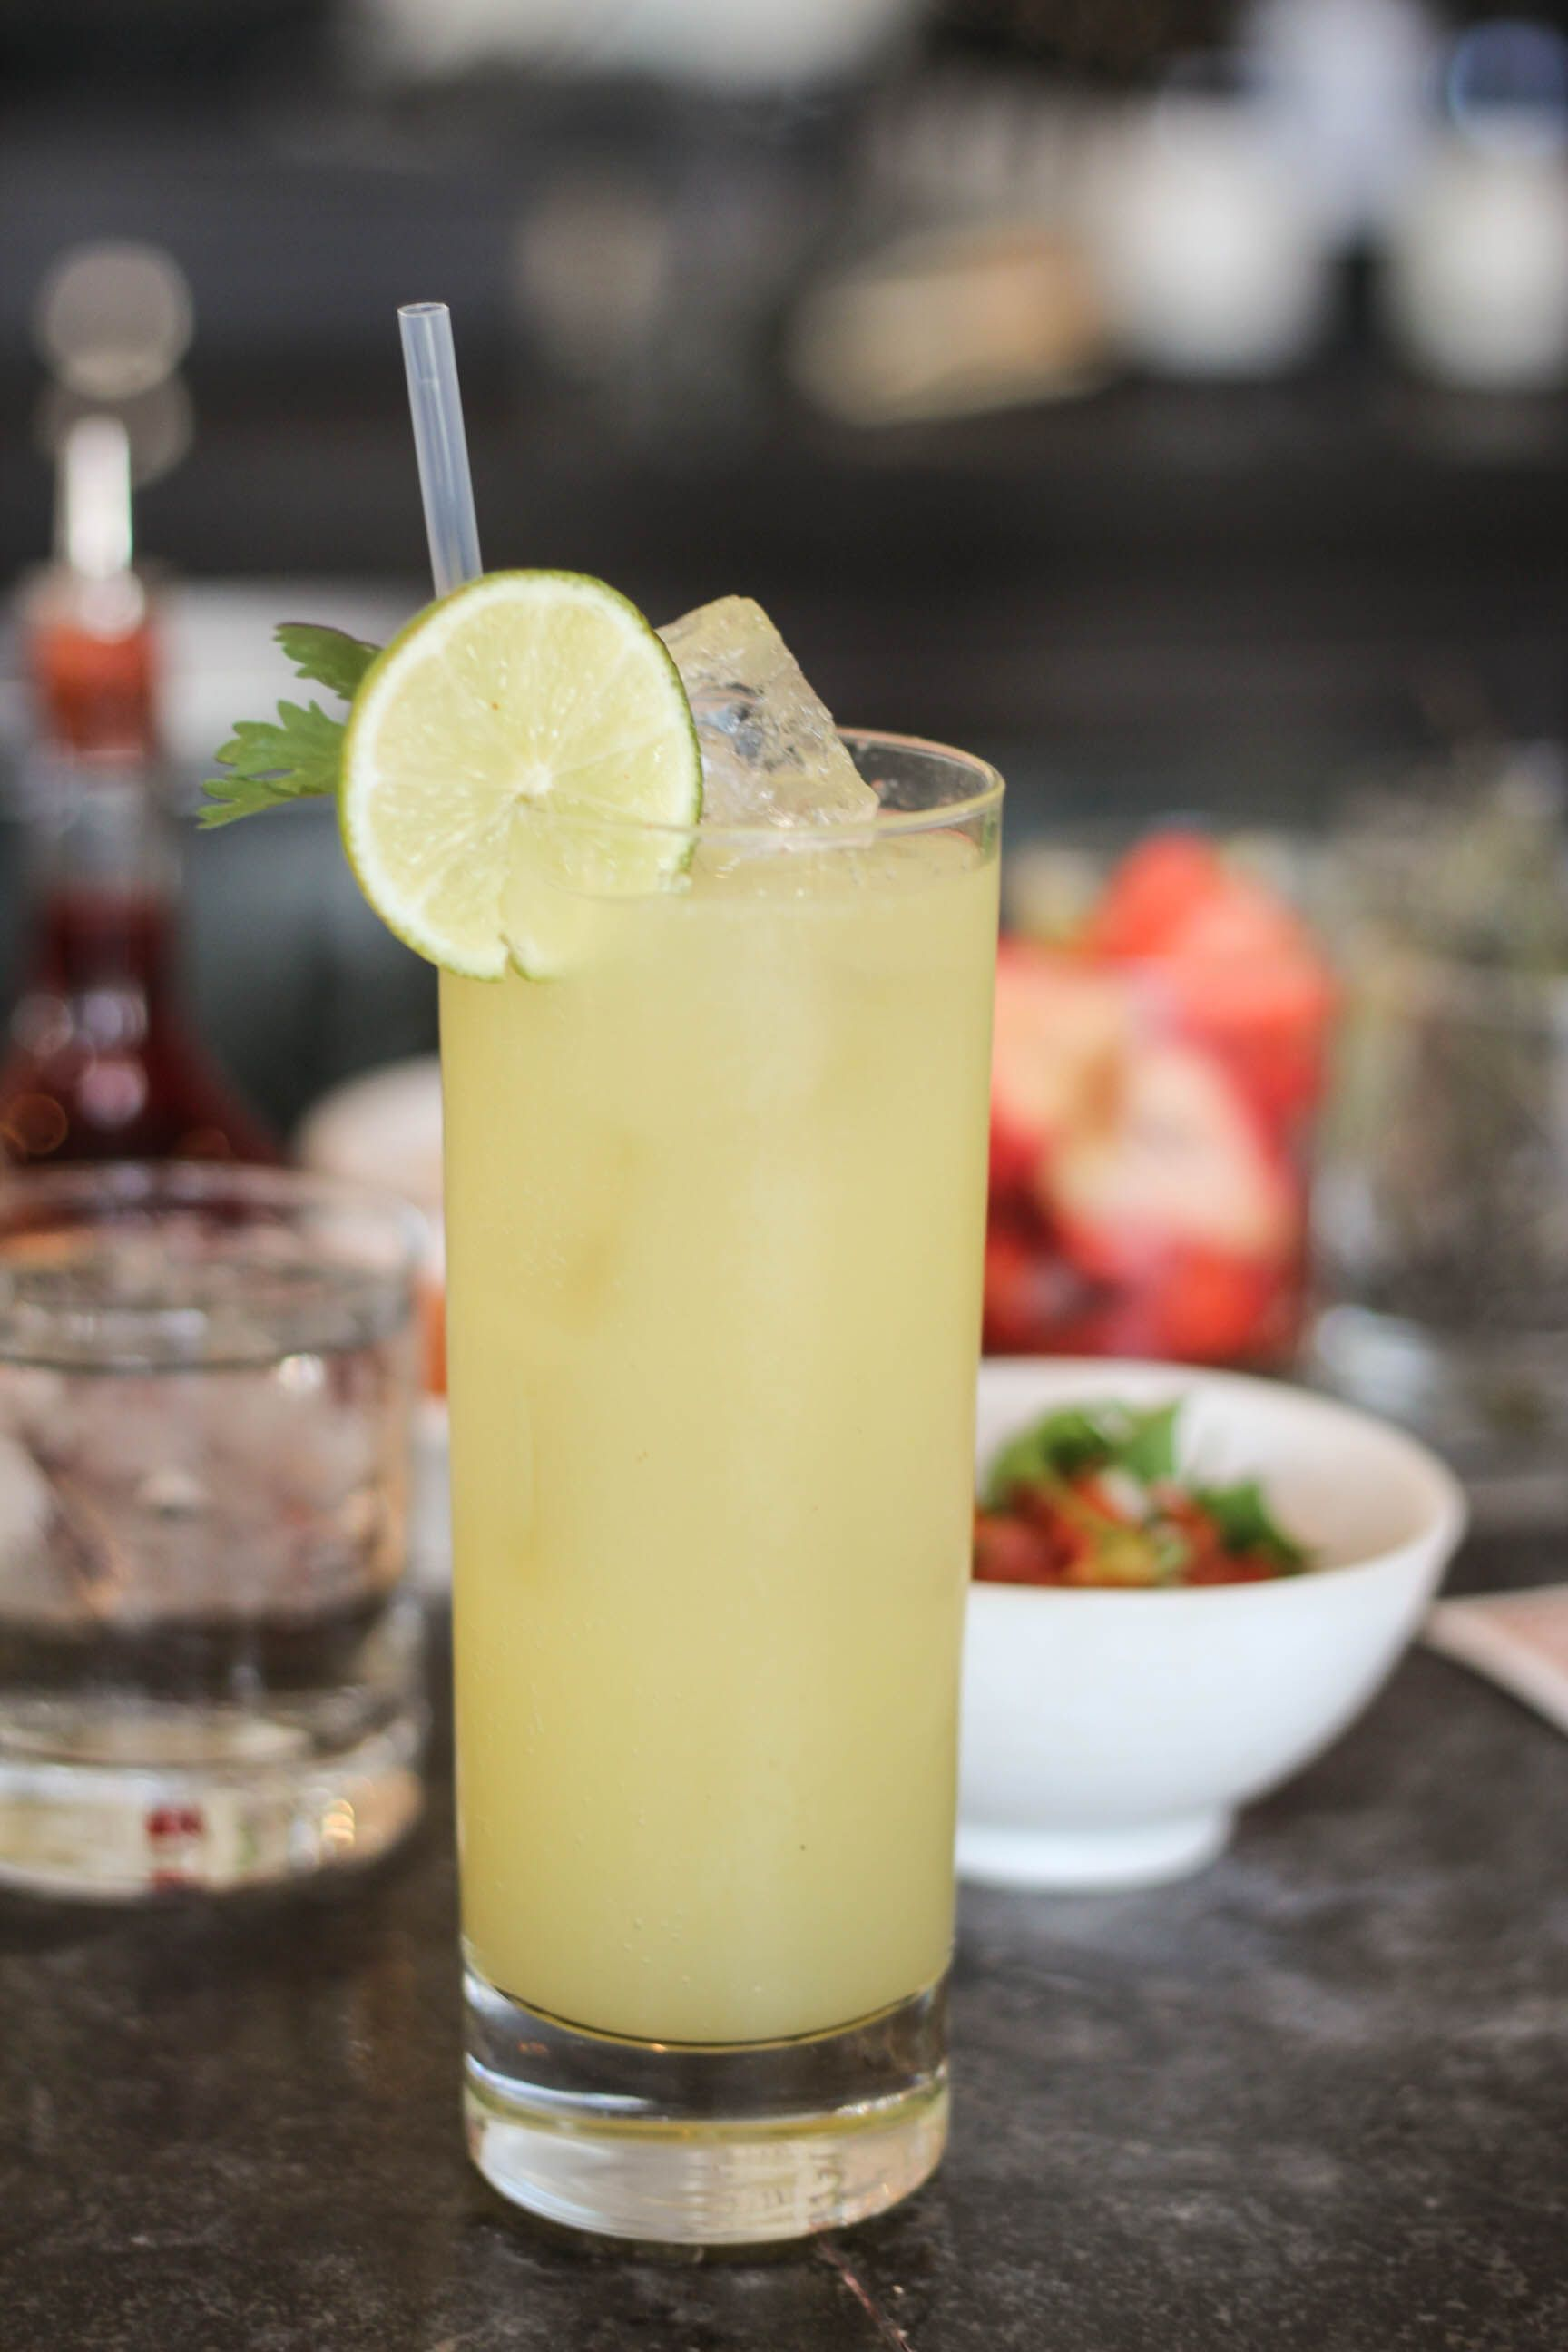 Dear love happy hour review for gracias madre in west